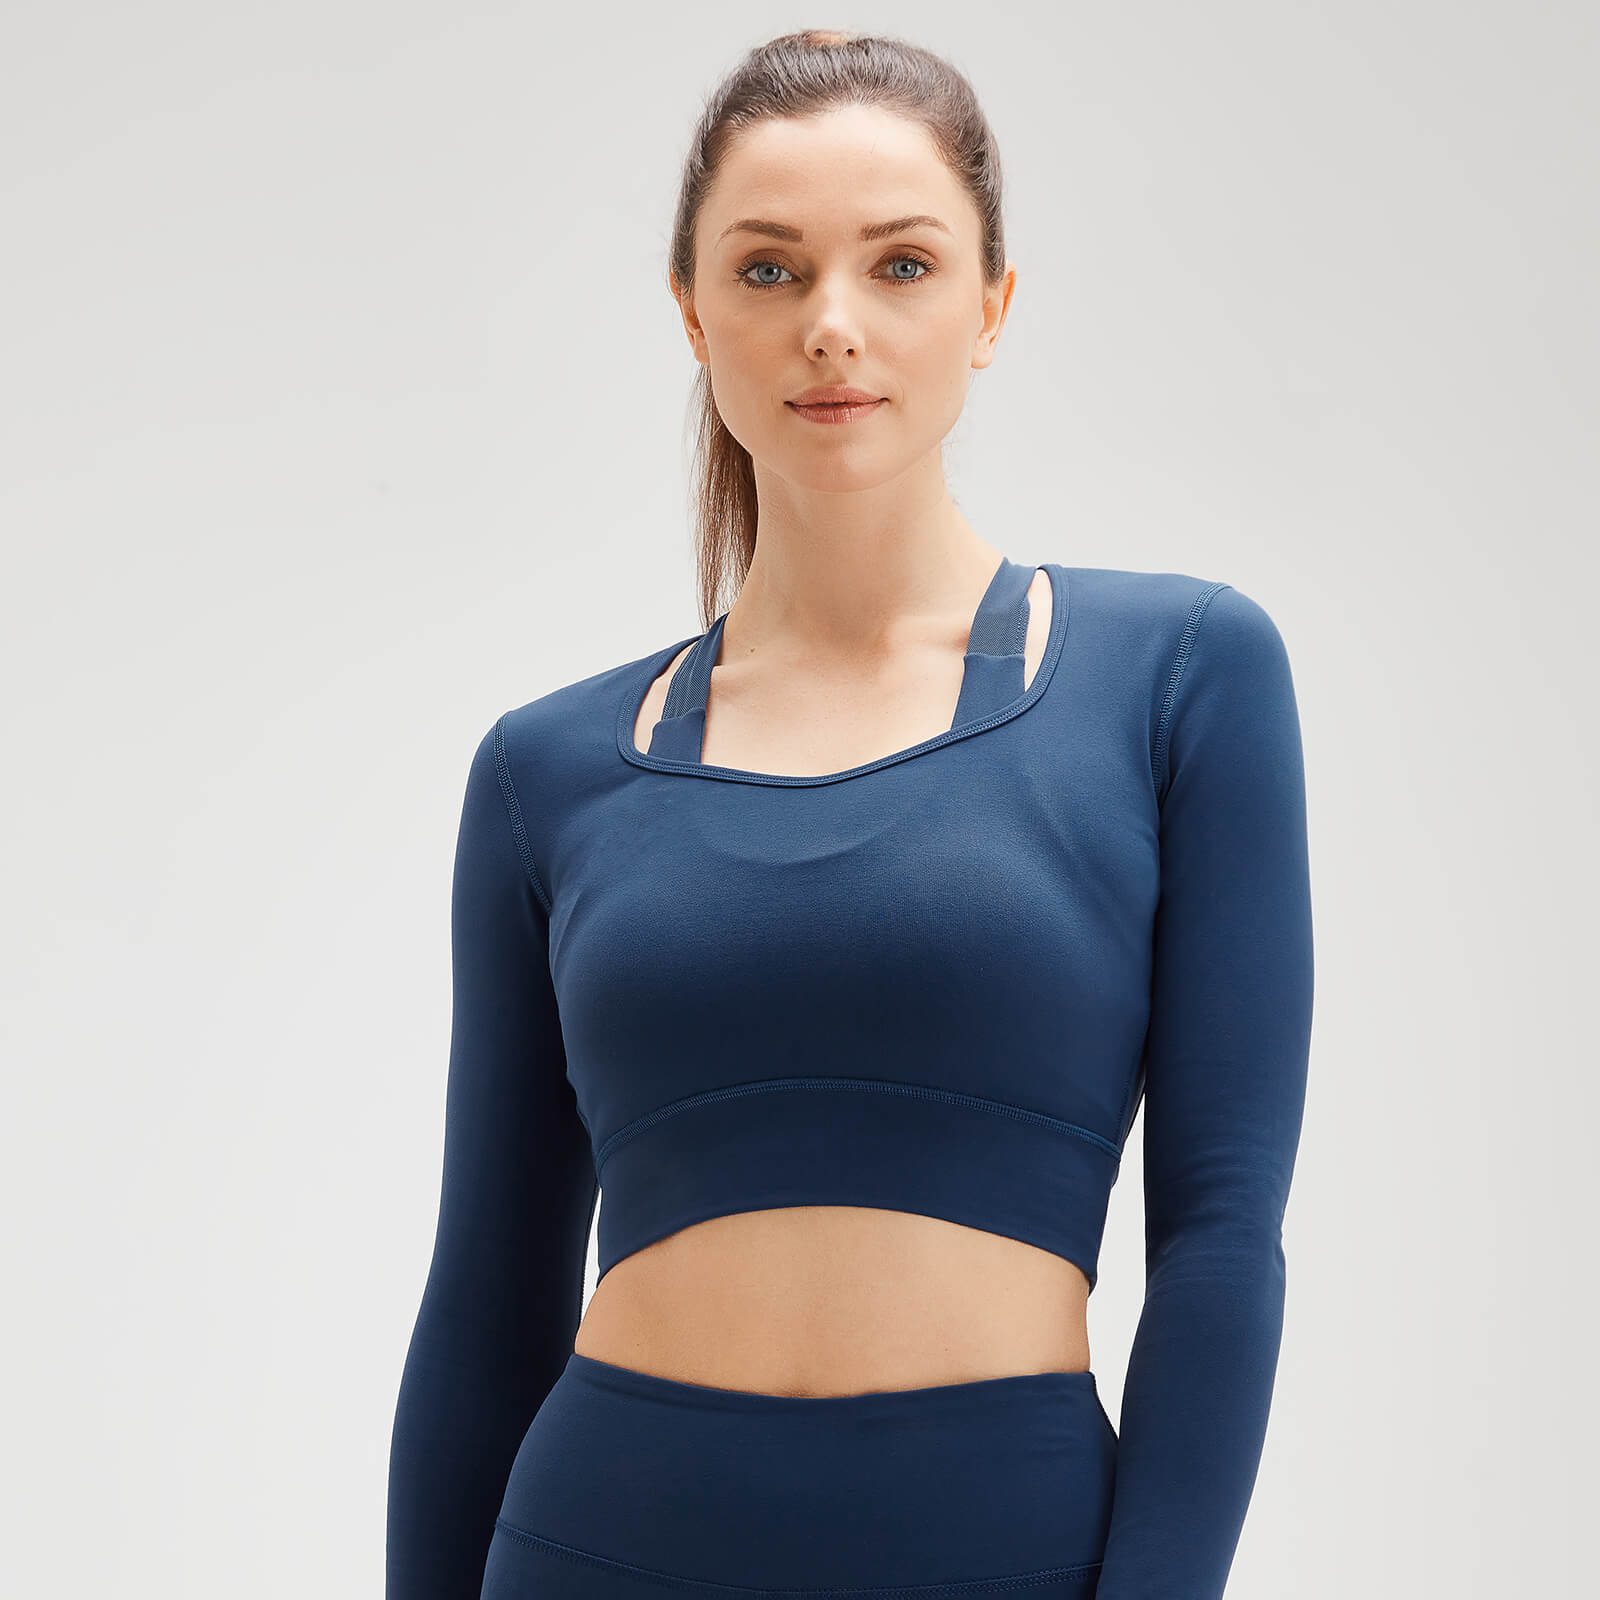 MP Women's Power Open Back Crop Top - Dark Blue - XS